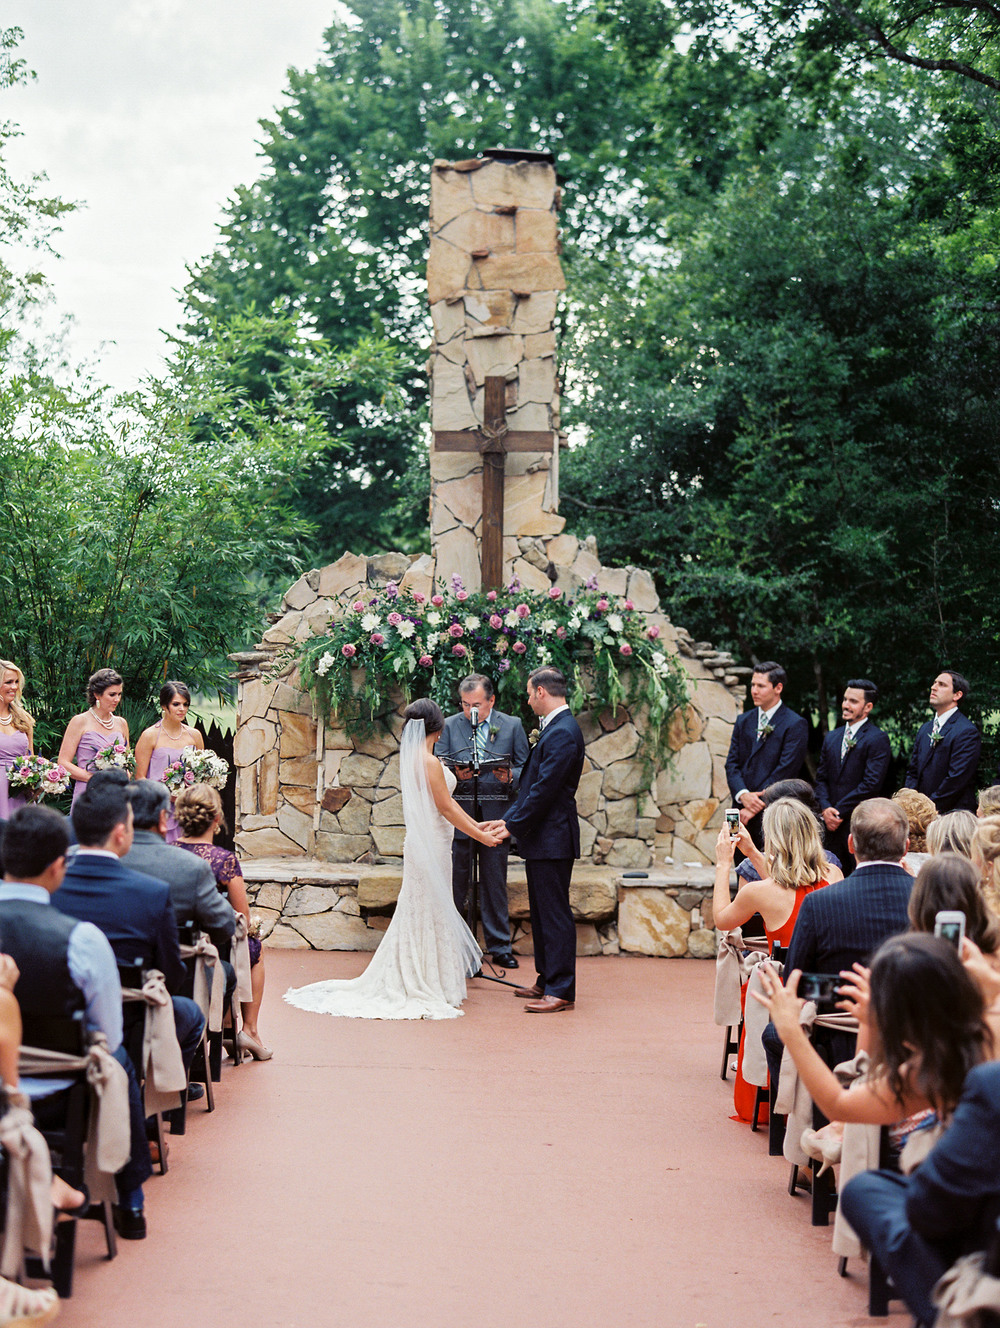 Dana Fernandez Photography Agave Road Agave Estates Houston Texas Wedding Photographer Destination Southwest Film-8.jpg